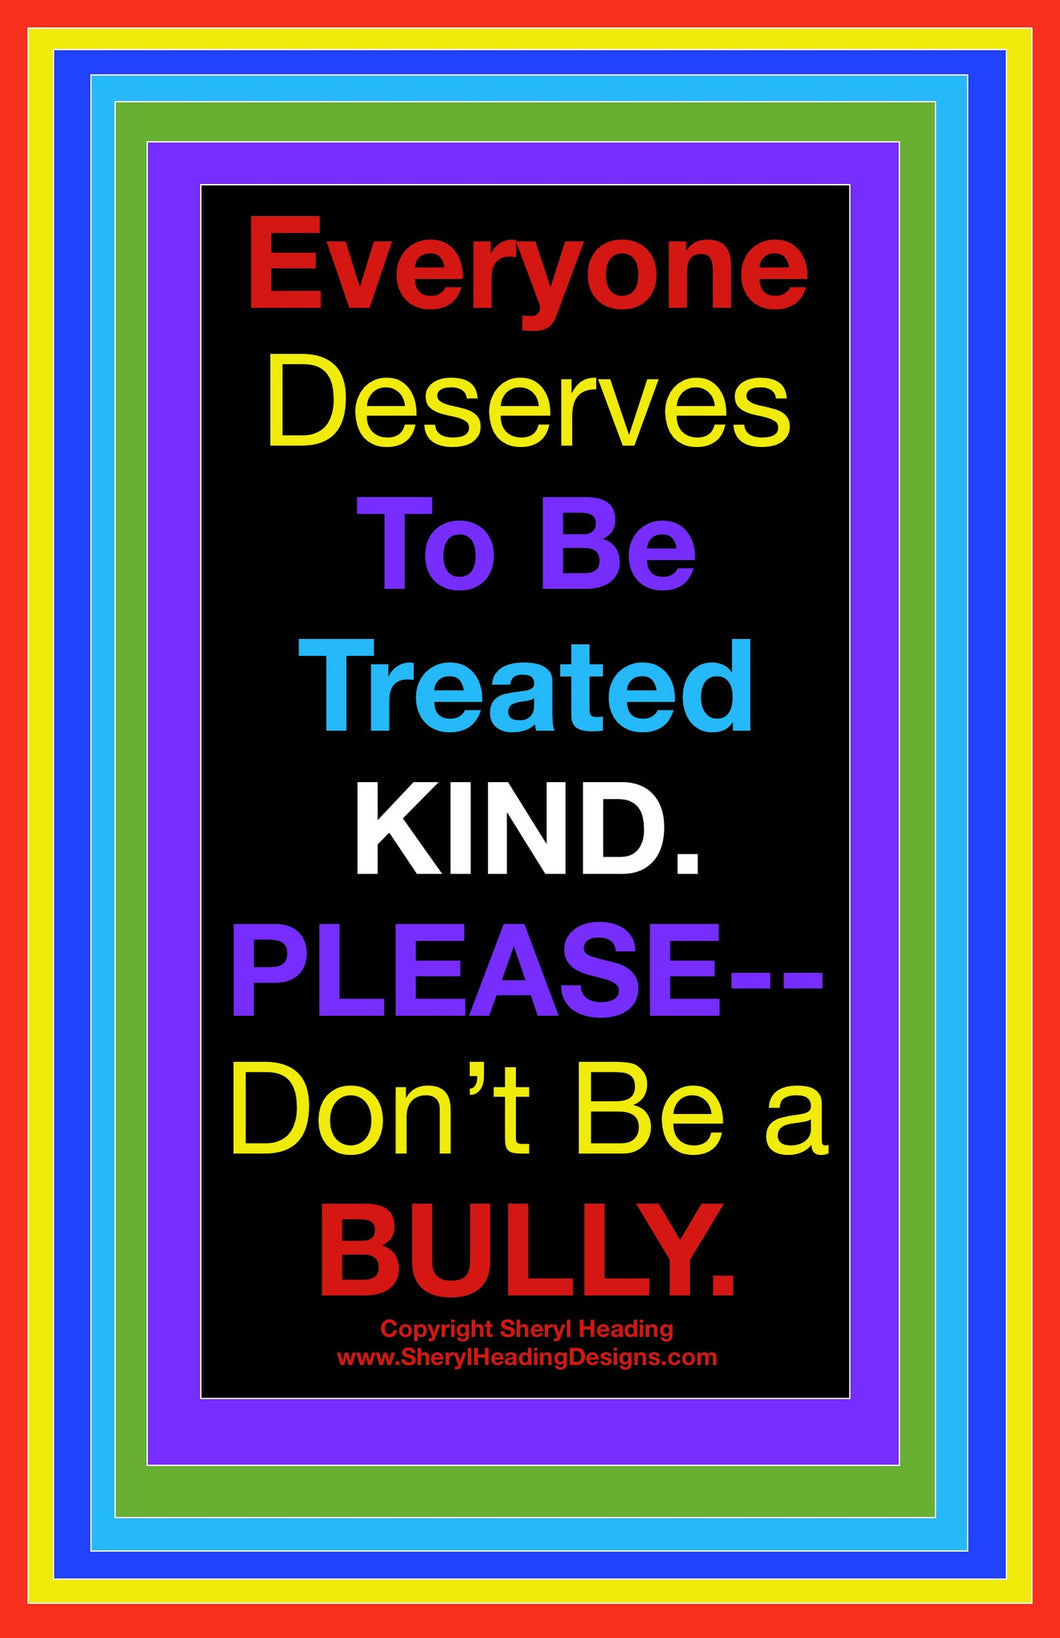 Please Don't Be A Bully Poster - Sheryl Heading Designs